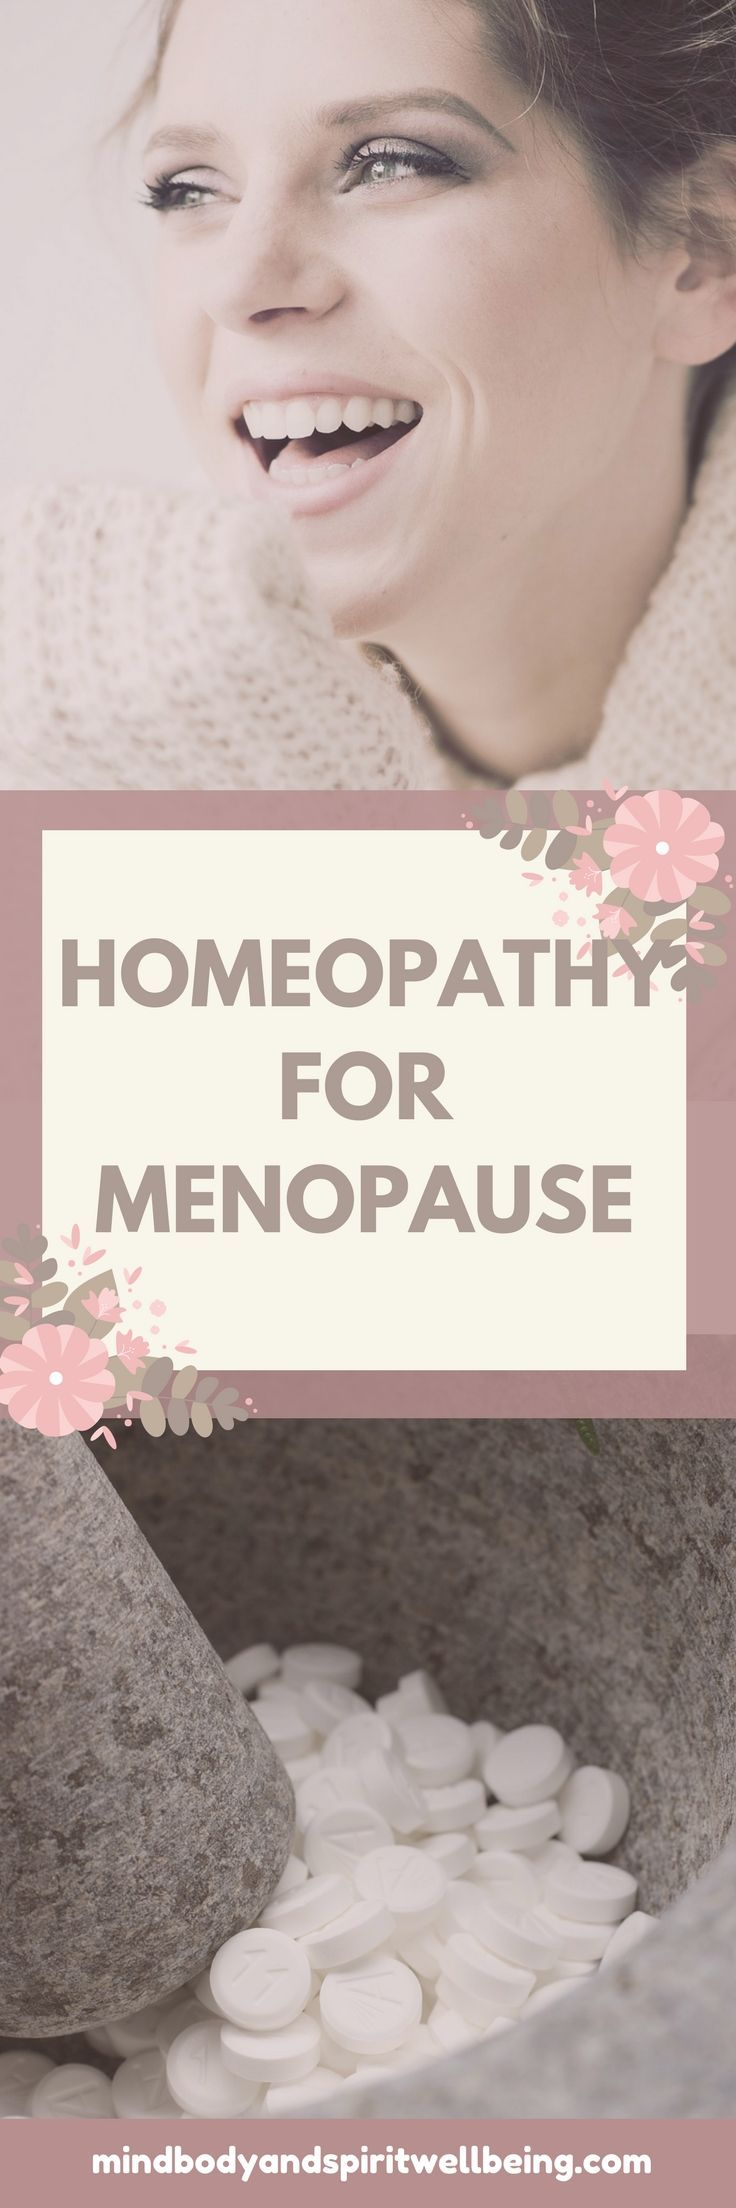 Homeopathy for the Menopausal Syndrome Homeopathy for the Menopausal Syndrome